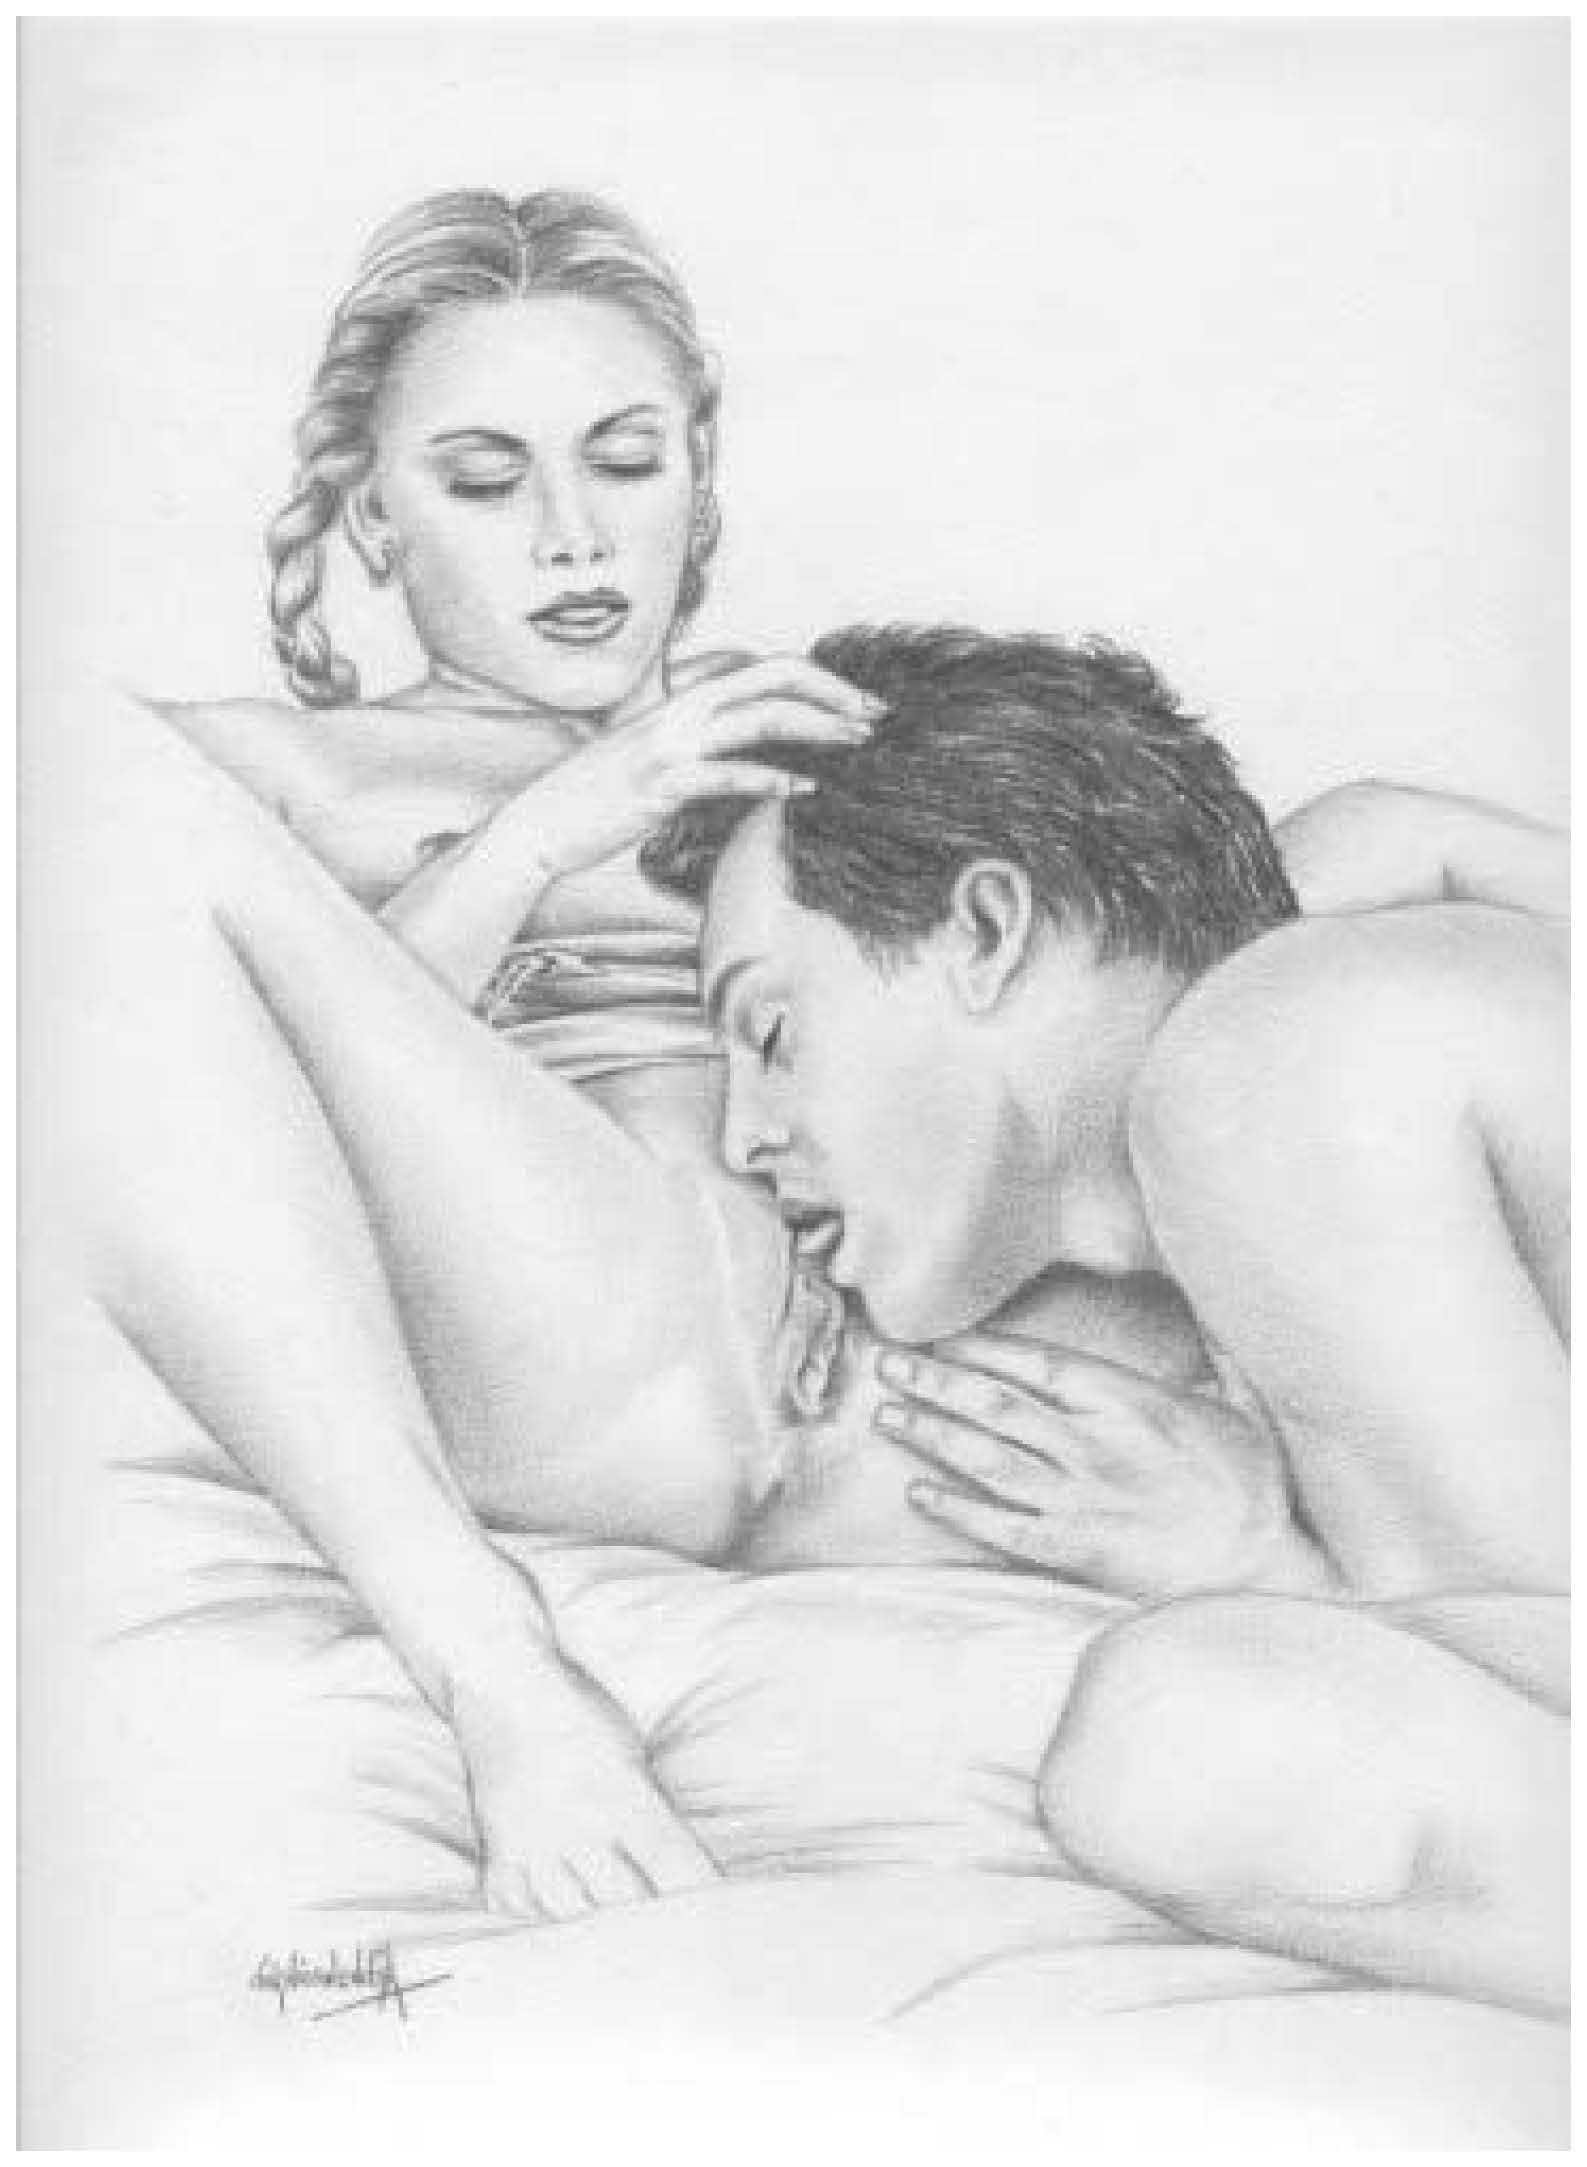 Licking pussy drawings erotic gallery